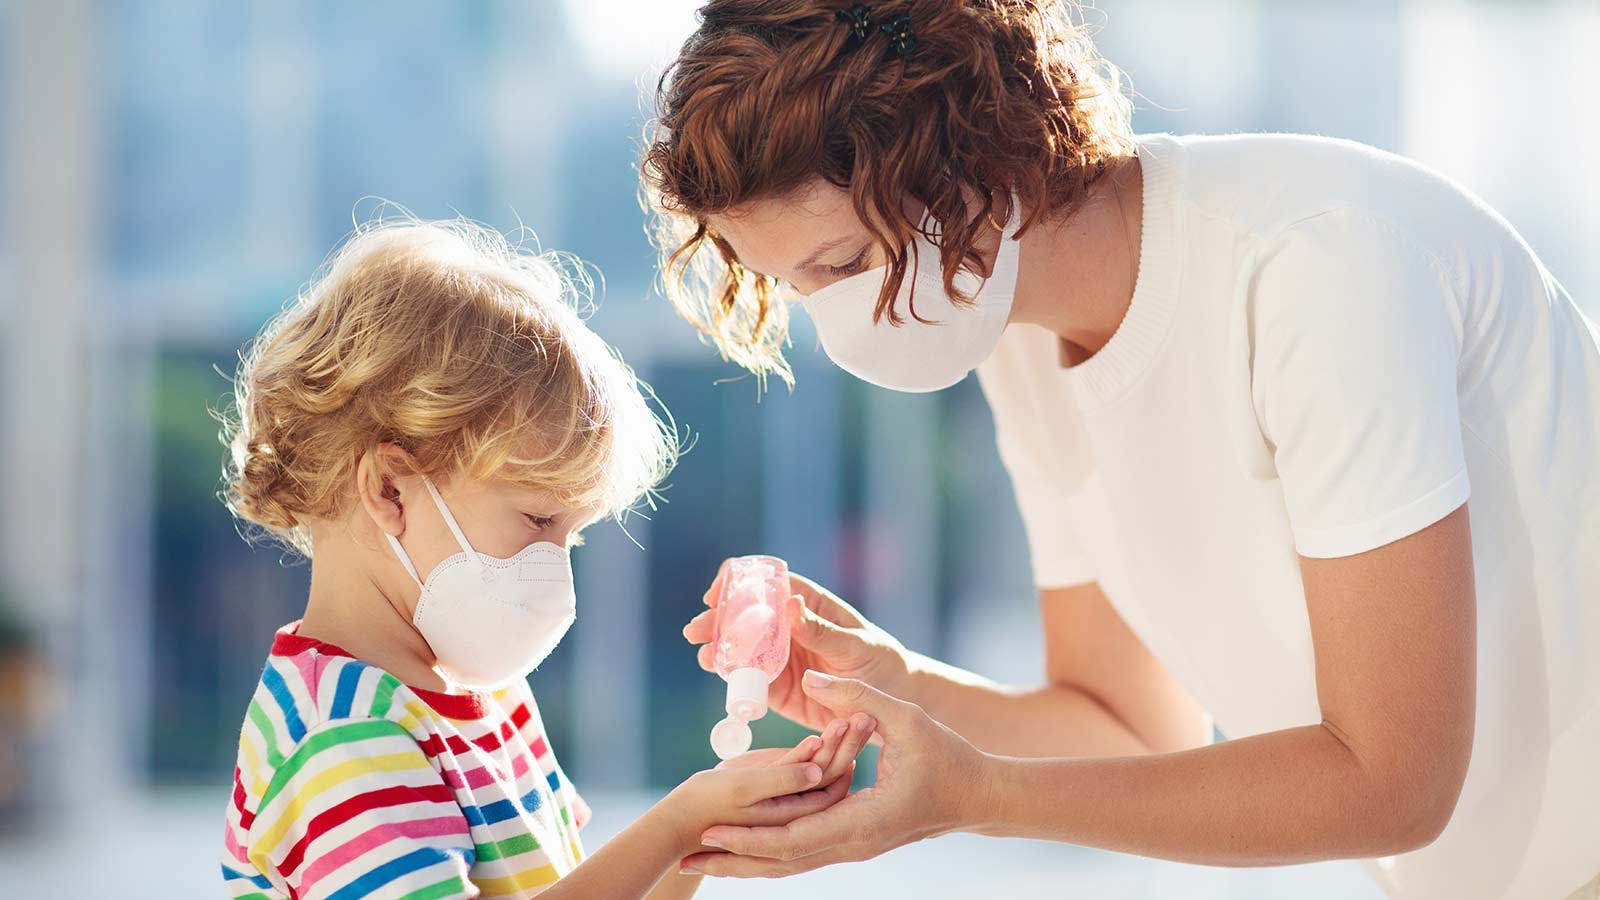 A mother and child, both wearing masks, using hand sanitizer.